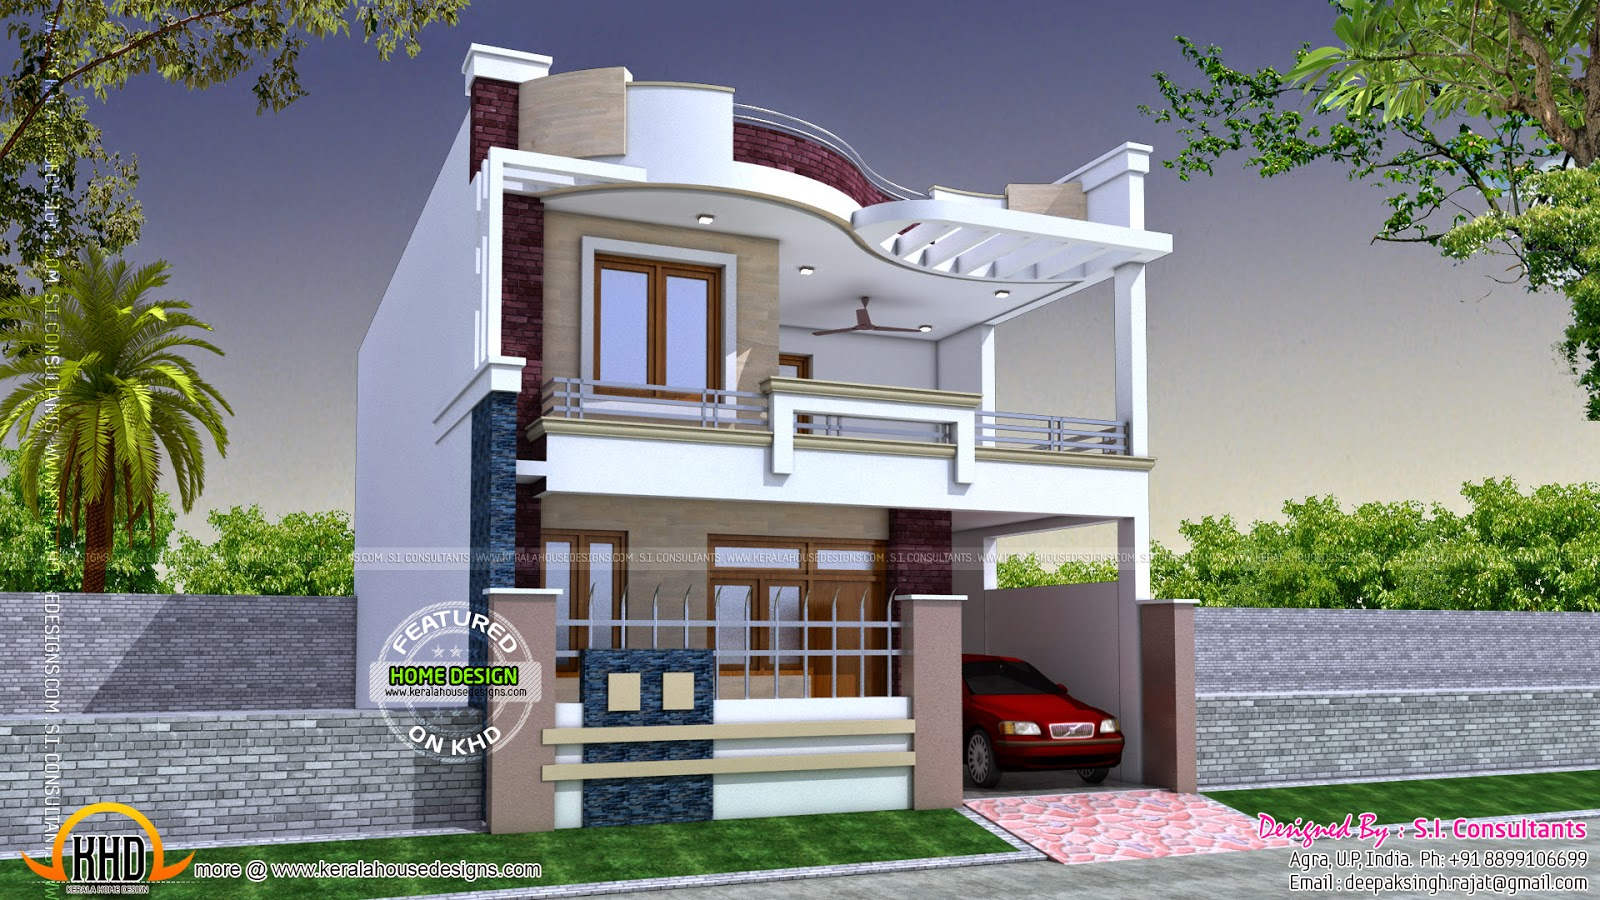 Modern indian home design kerala home design and floor plans for Modern design home plans